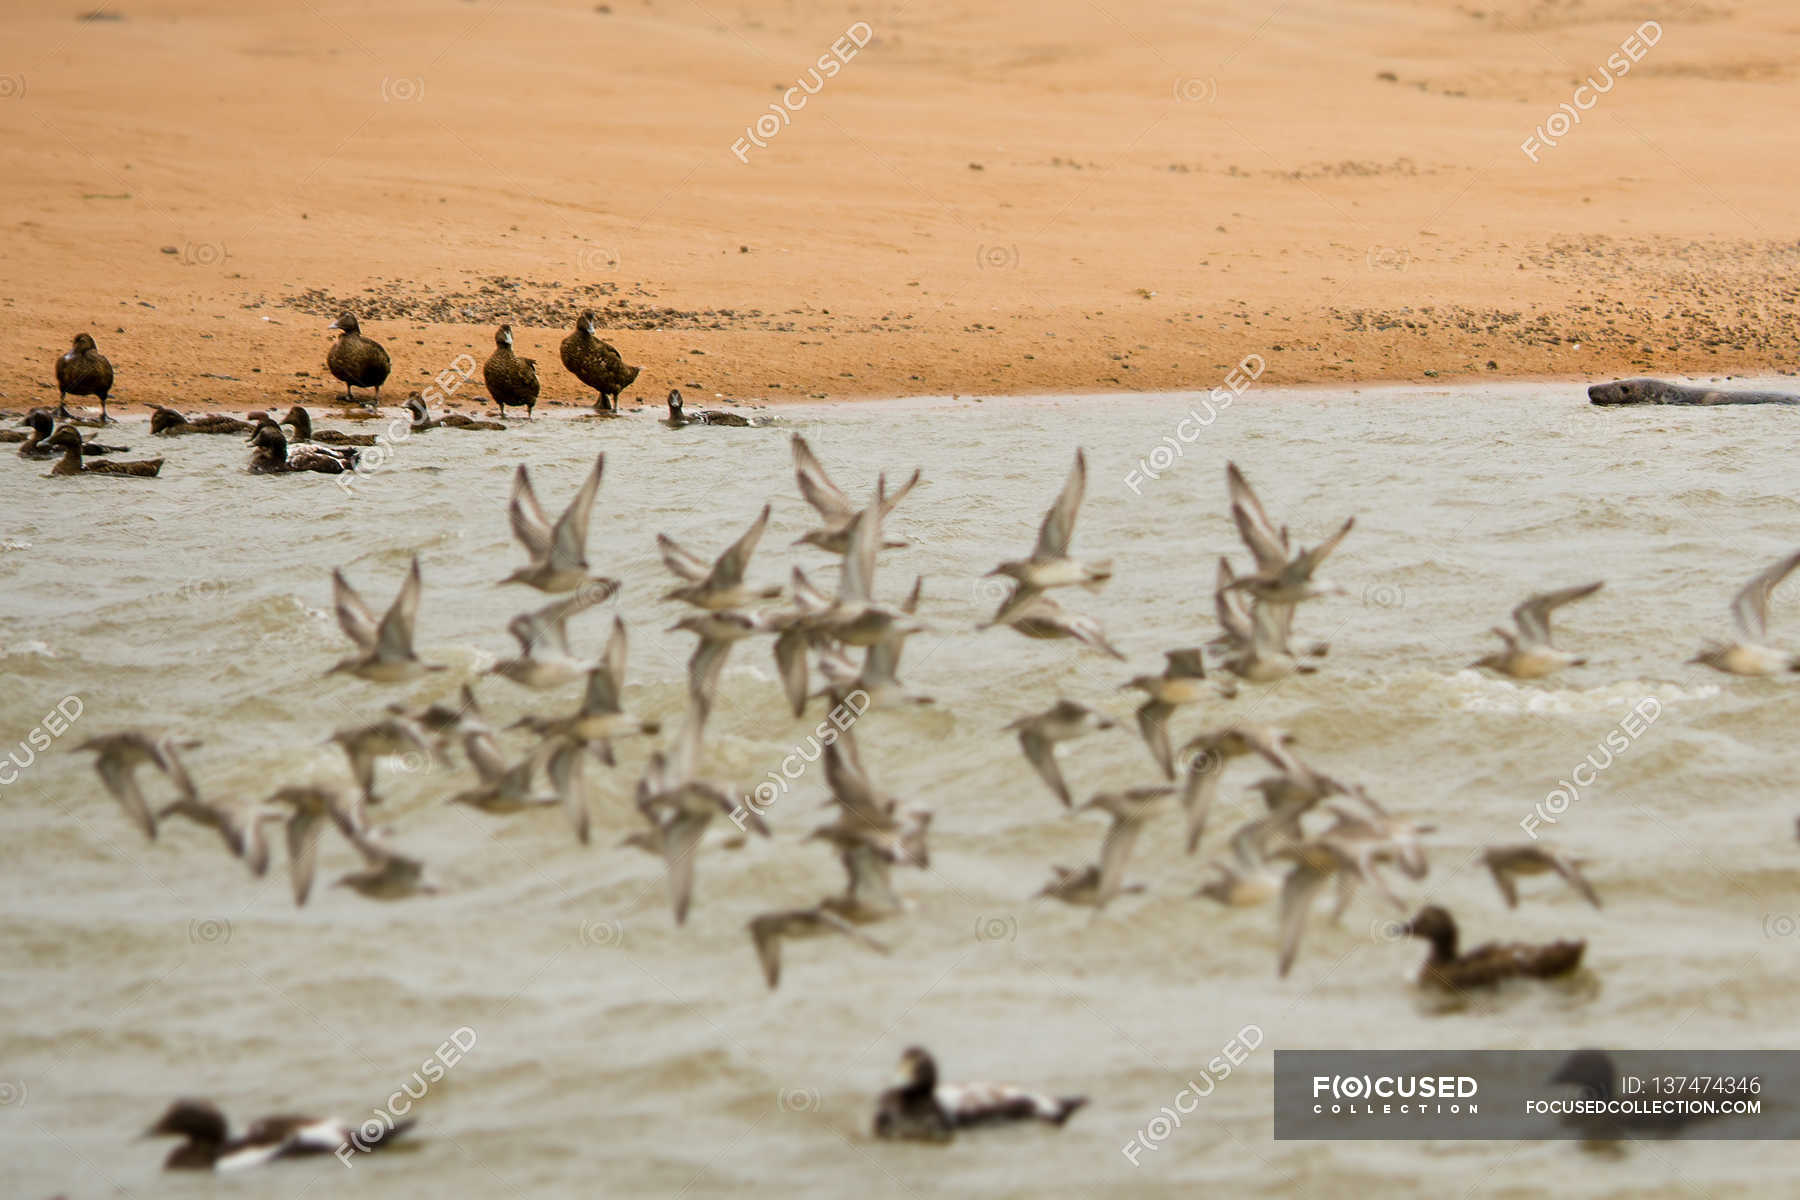 Flock Of Birds Stock Photos Royalty Free Images Focused